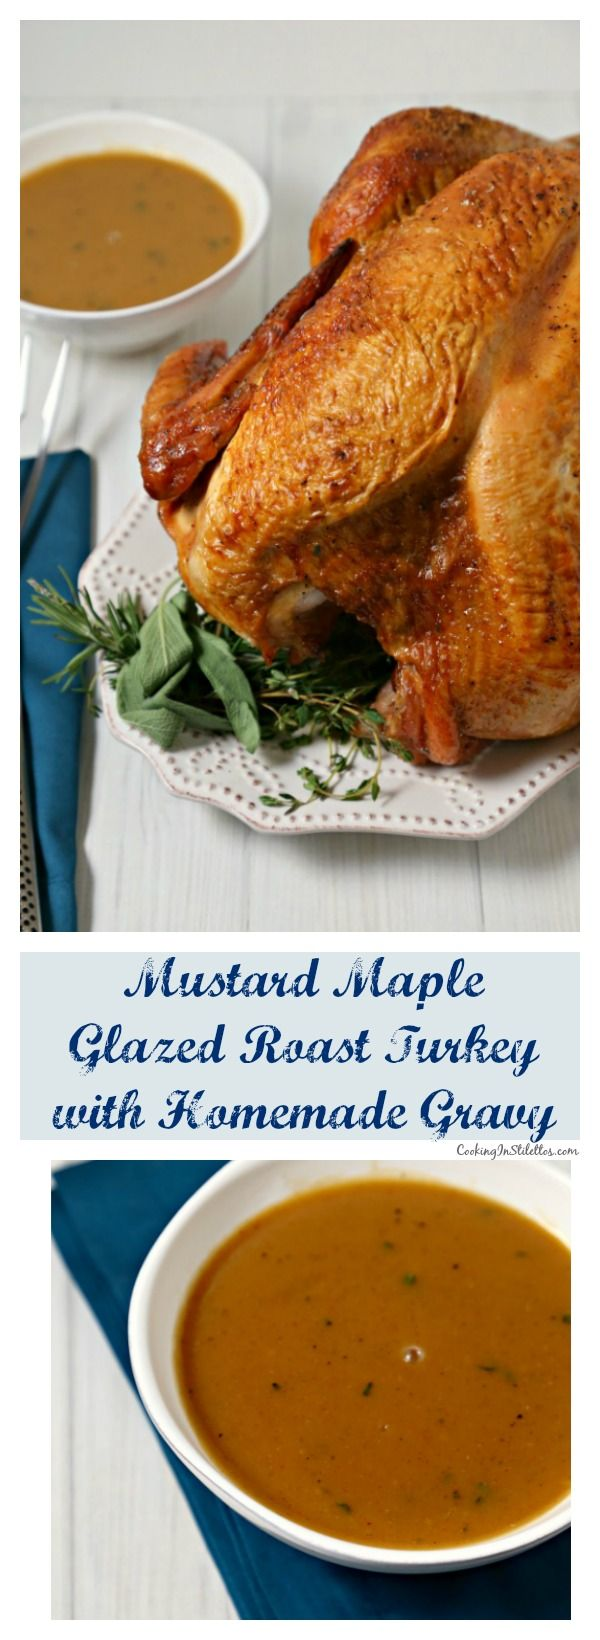 This Mustard Maple Glazed Roast Turkey with Homemade Gravy from CookingInStilettos.com is a flavorful twist on a classic roast turkey recipe.  Golden roast turkey is glazed with a sweet and spicy mustard maple glaze that is packed with flavor and perfect for your holiday menu.